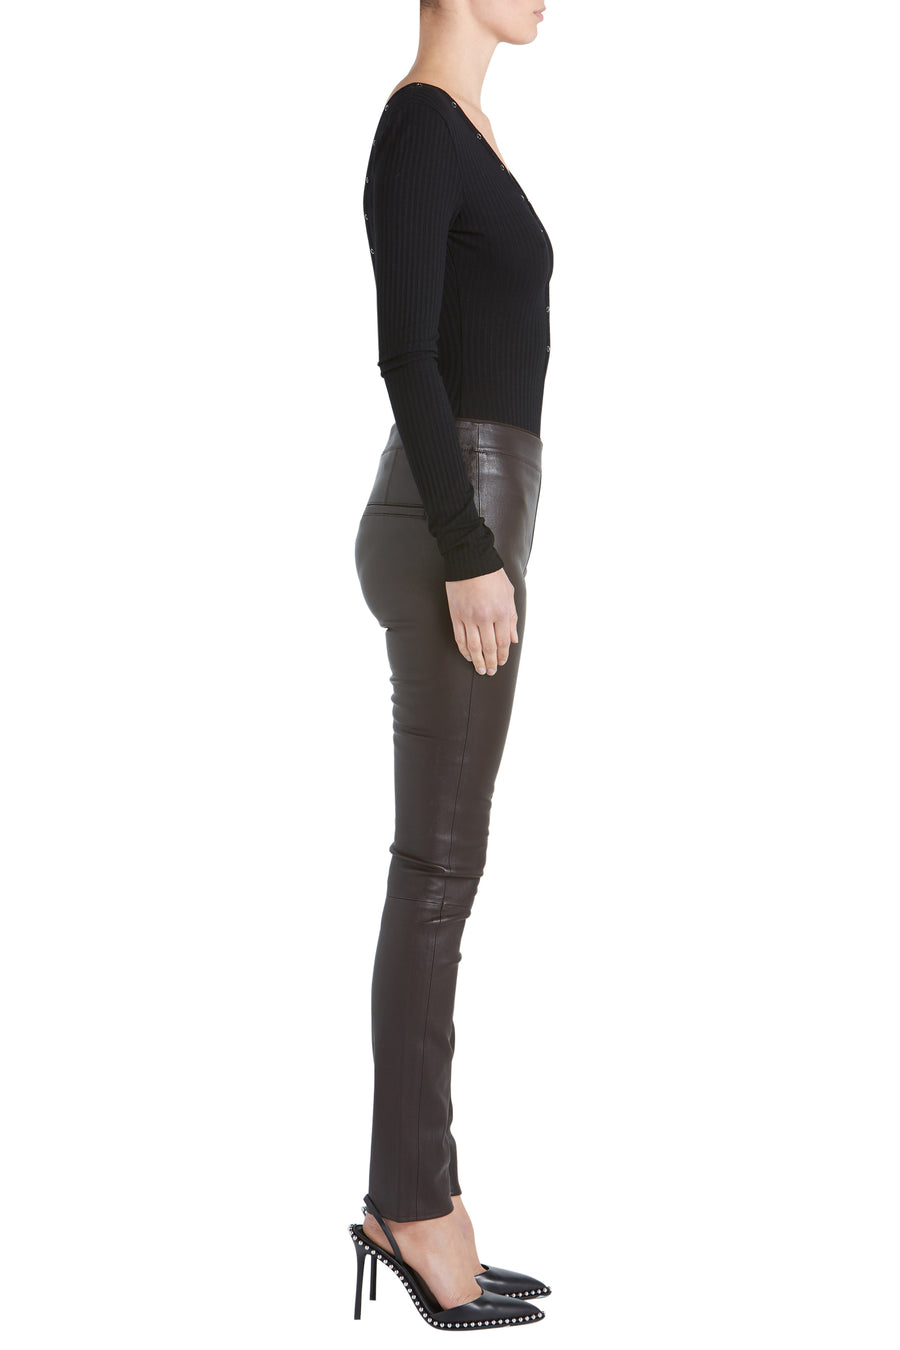 STRETCH LTHER LEGGING